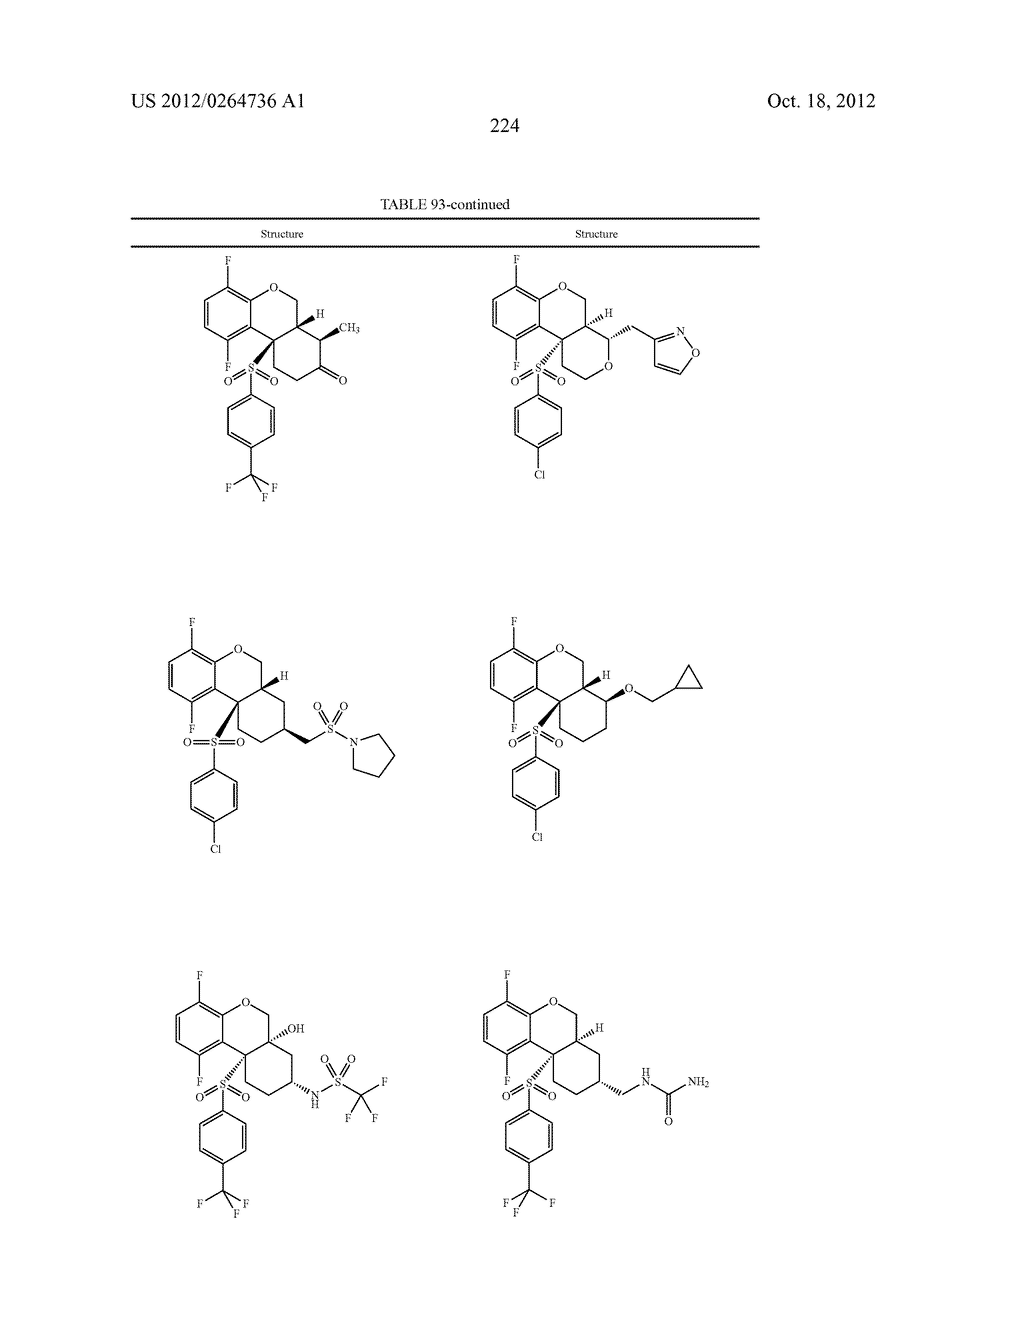 BENZENESULFONYL-CHROMANE, THIOCHROMANE, TETRAHYDRONAPHTHALENE AND RELATED     GAMMA SECRETASE INHIBITORS - diagram, schematic, and image 225